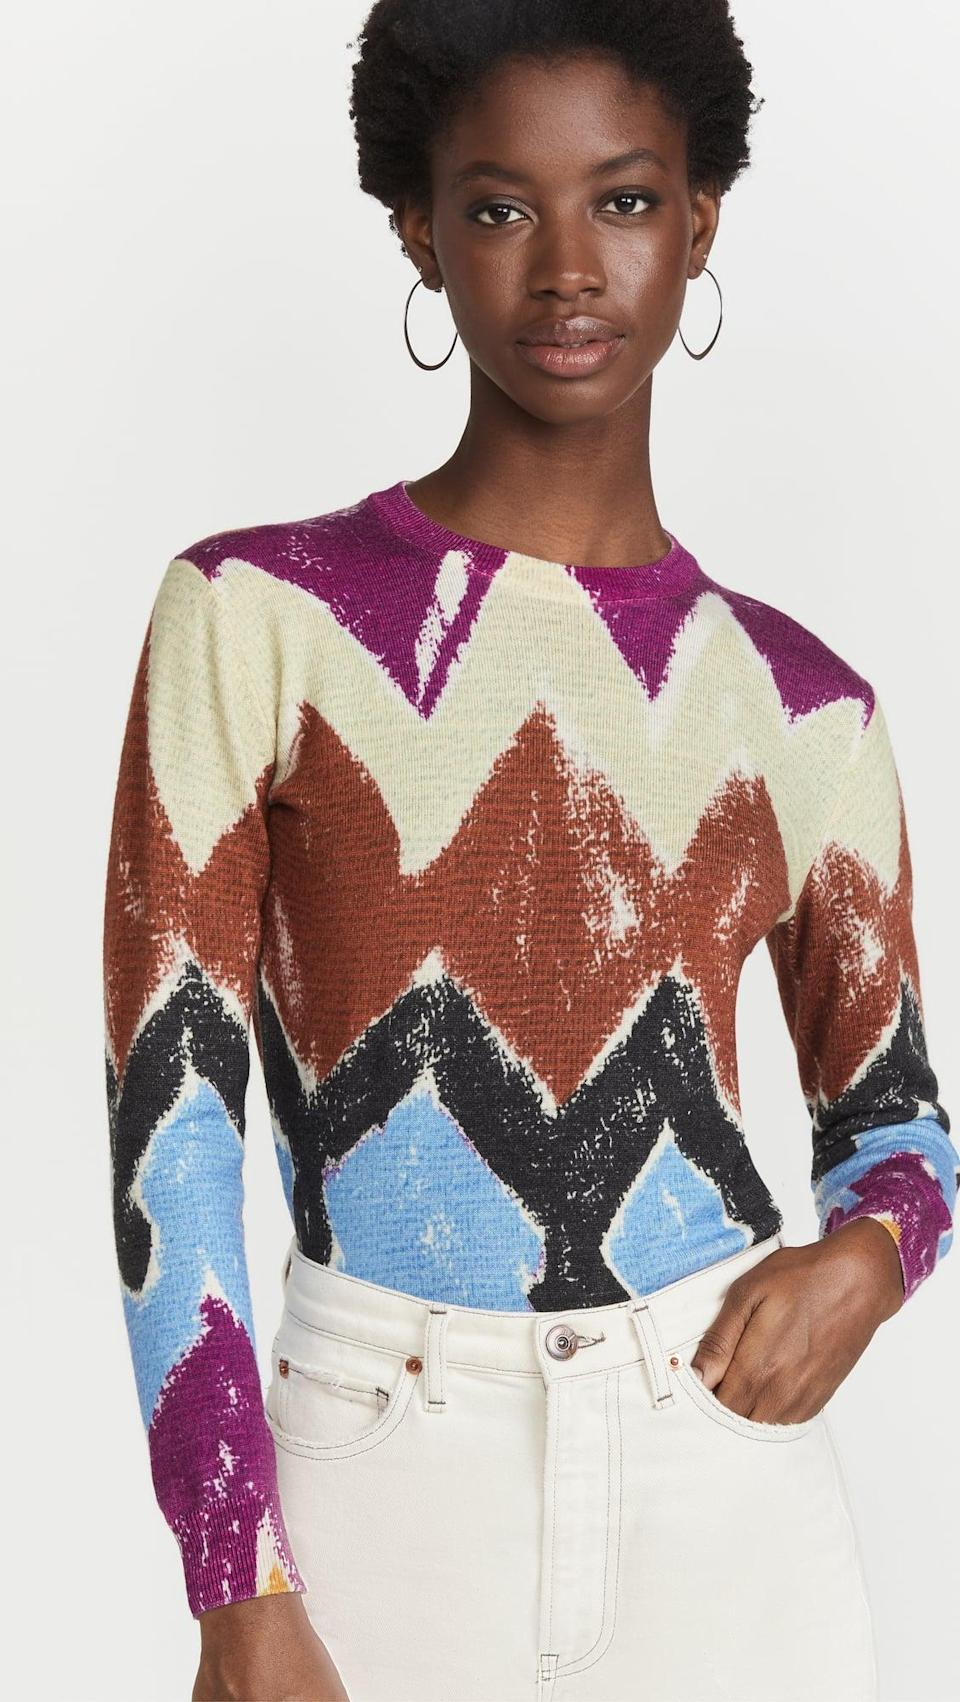 <p>This <span>Stella Jean Sweater</span> ($525) makes a colorful, splurge-worthy purchase you'll cherish among your favorite fall tops. From the silhouette to the print, it exudes easy elegance.</p>